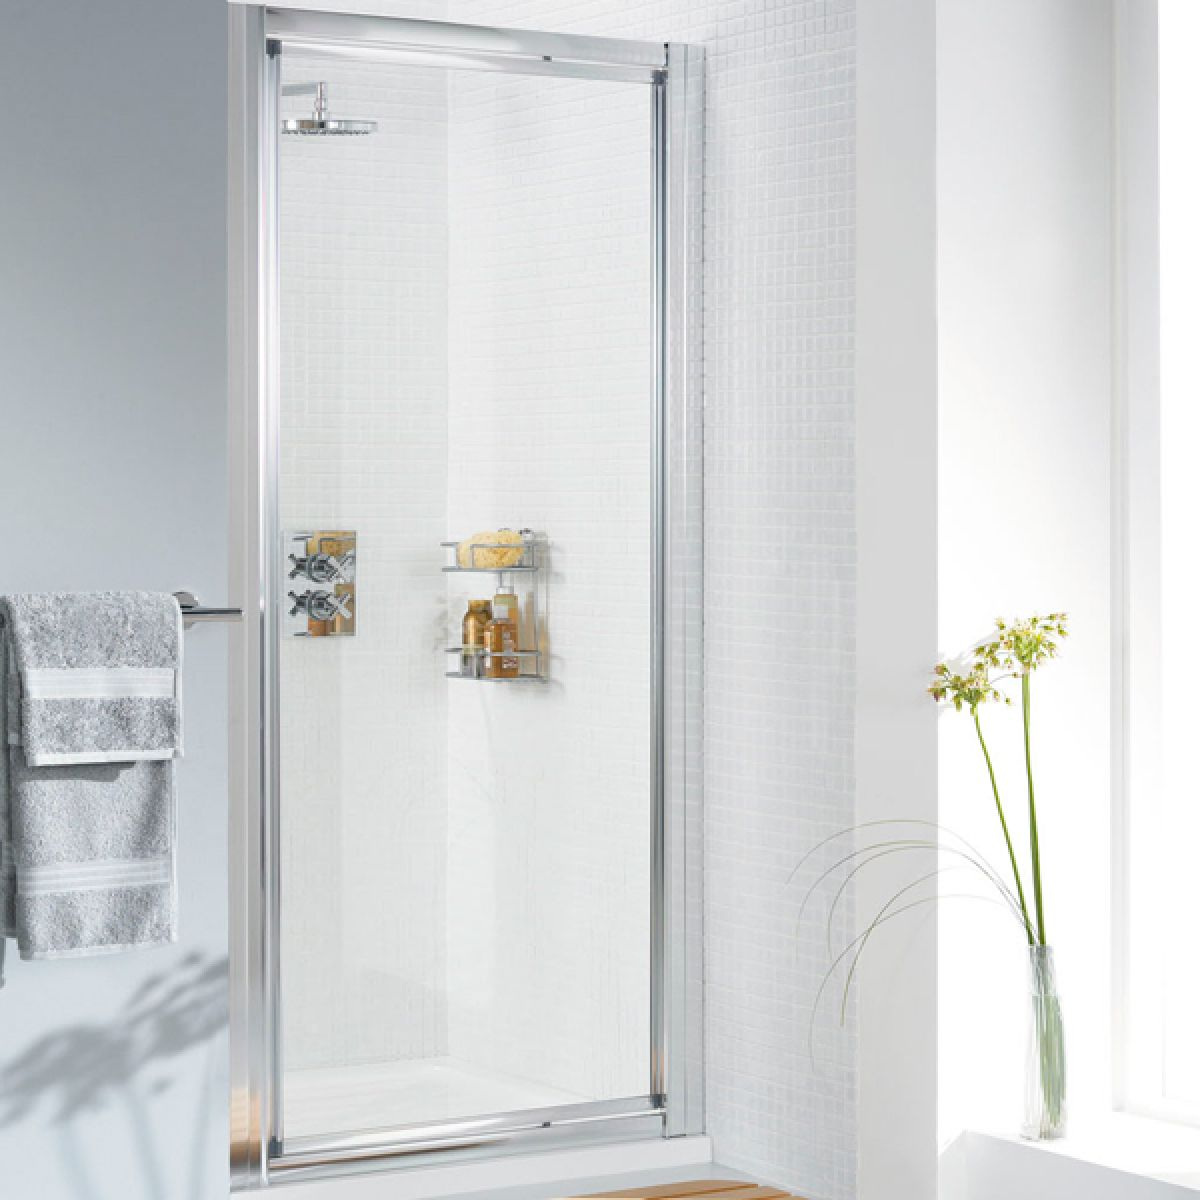 Lakes Classic Silver Pivot Shower Door with Optional Side Panel